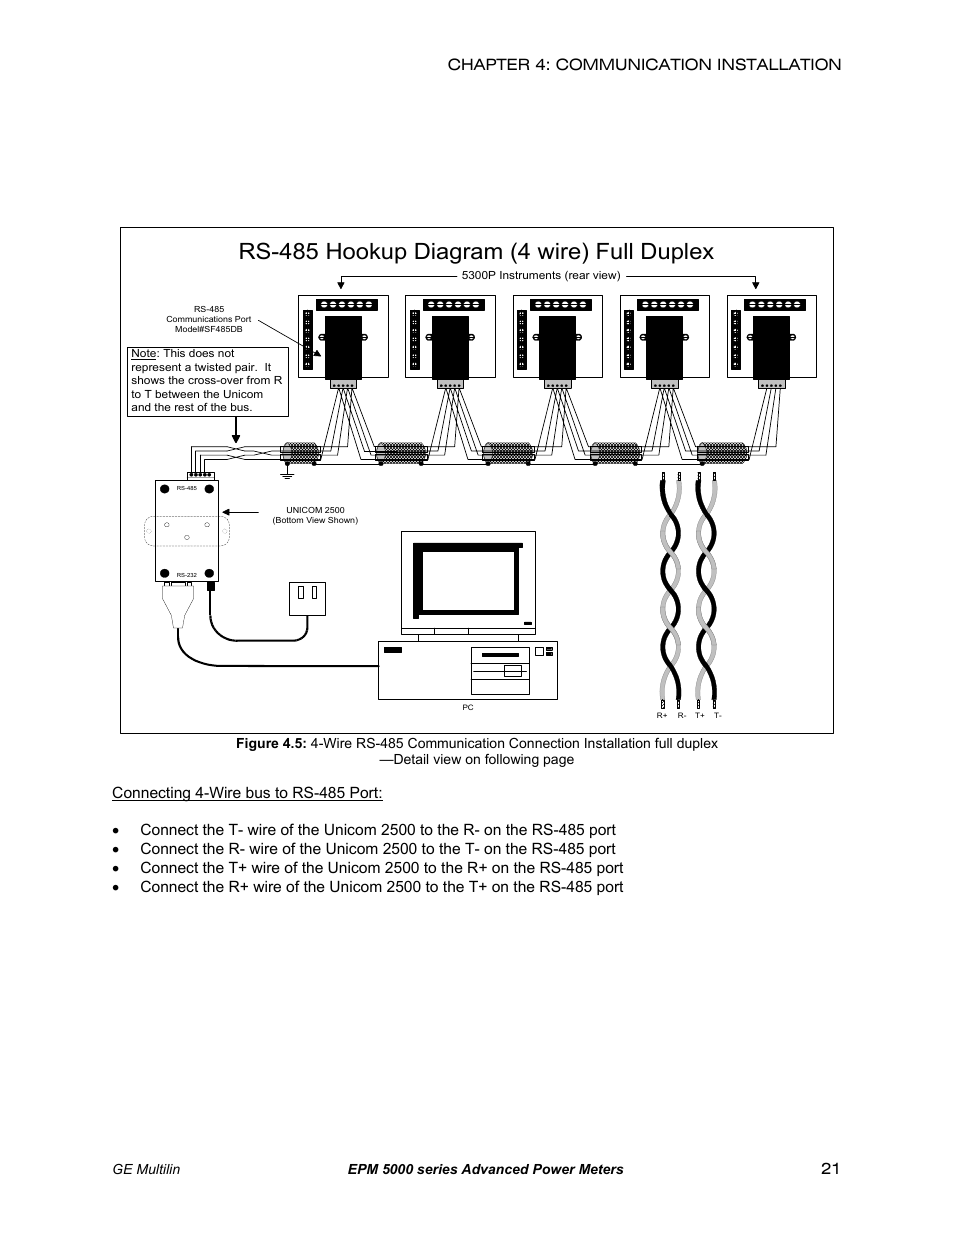 Rs 485 Hookup Diagram 4 Wire Full Duplex Ge Epm 5200 User Manual 422 Wiring Page 25 100